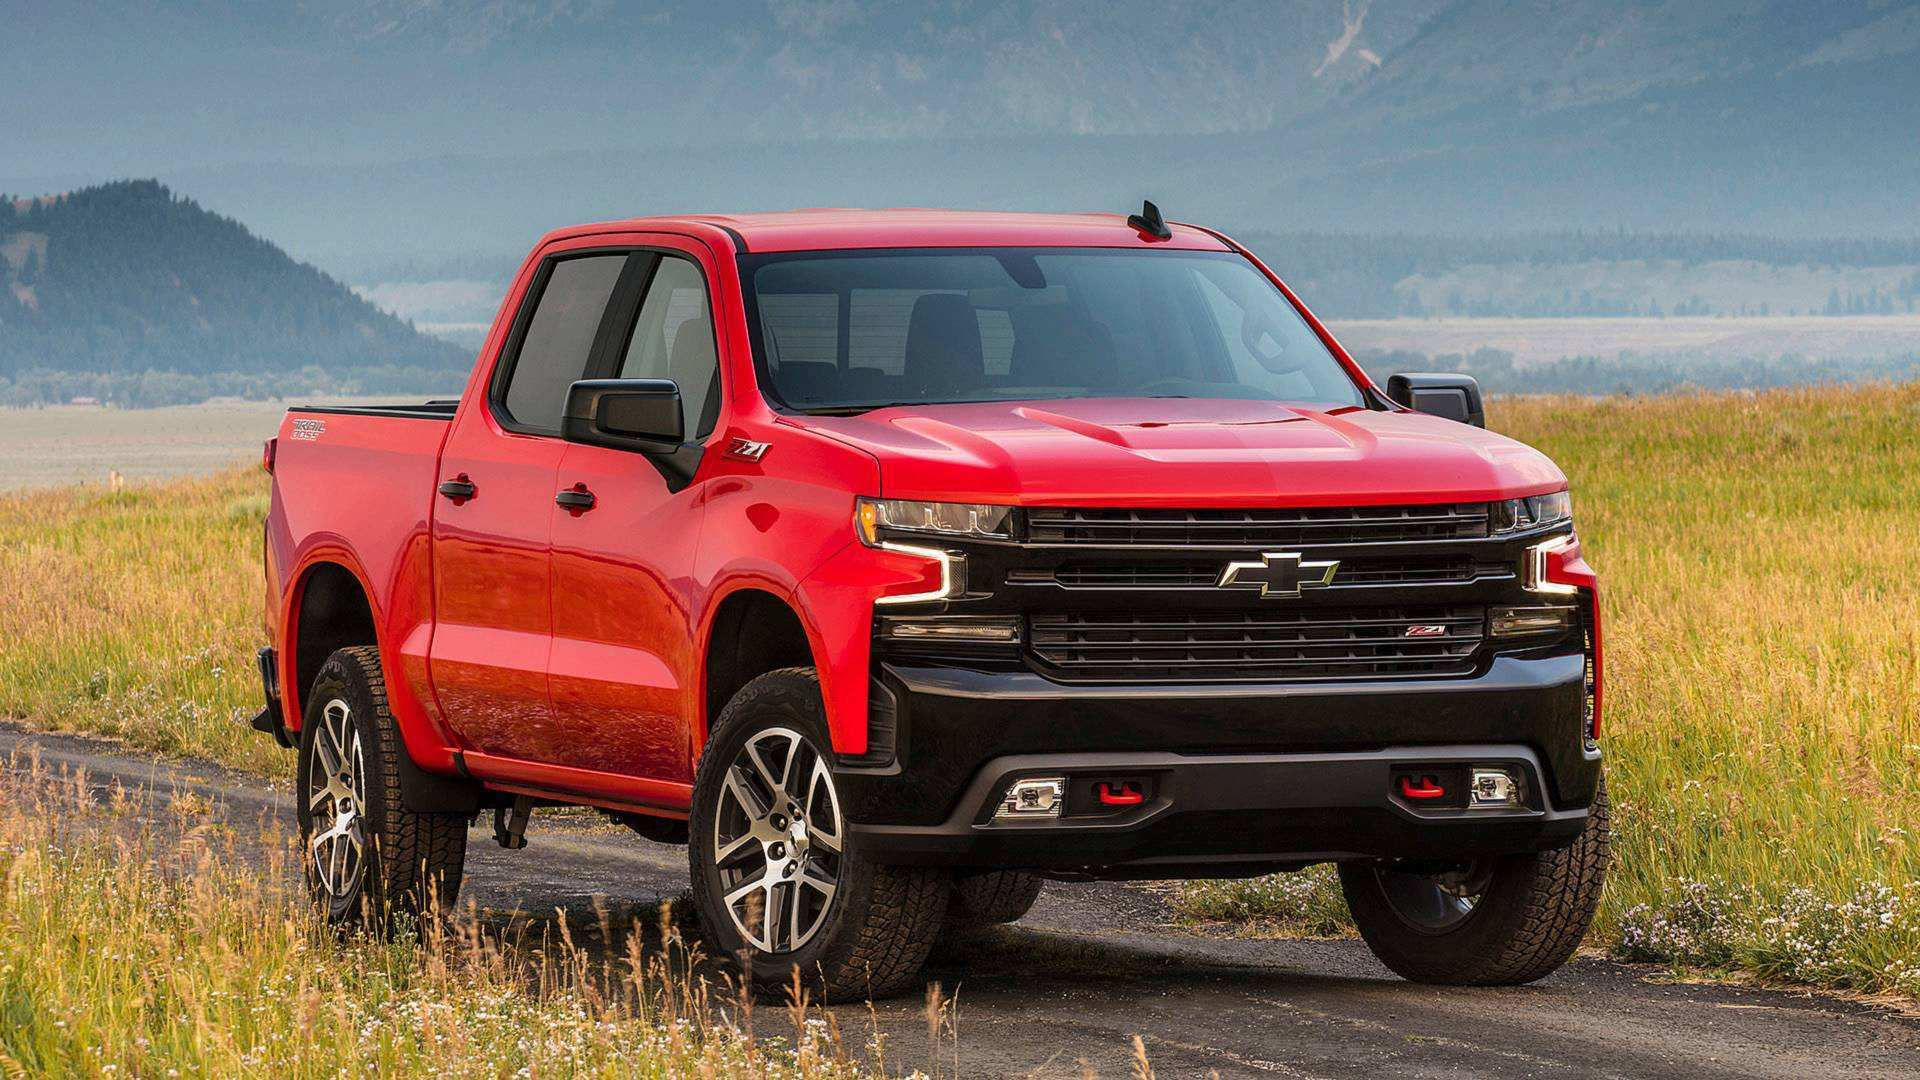 42 New The Chevrolet Silverado 2019 Diesel First Drive Configurations by The Chevrolet Silverado 2019 Diesel First Drive